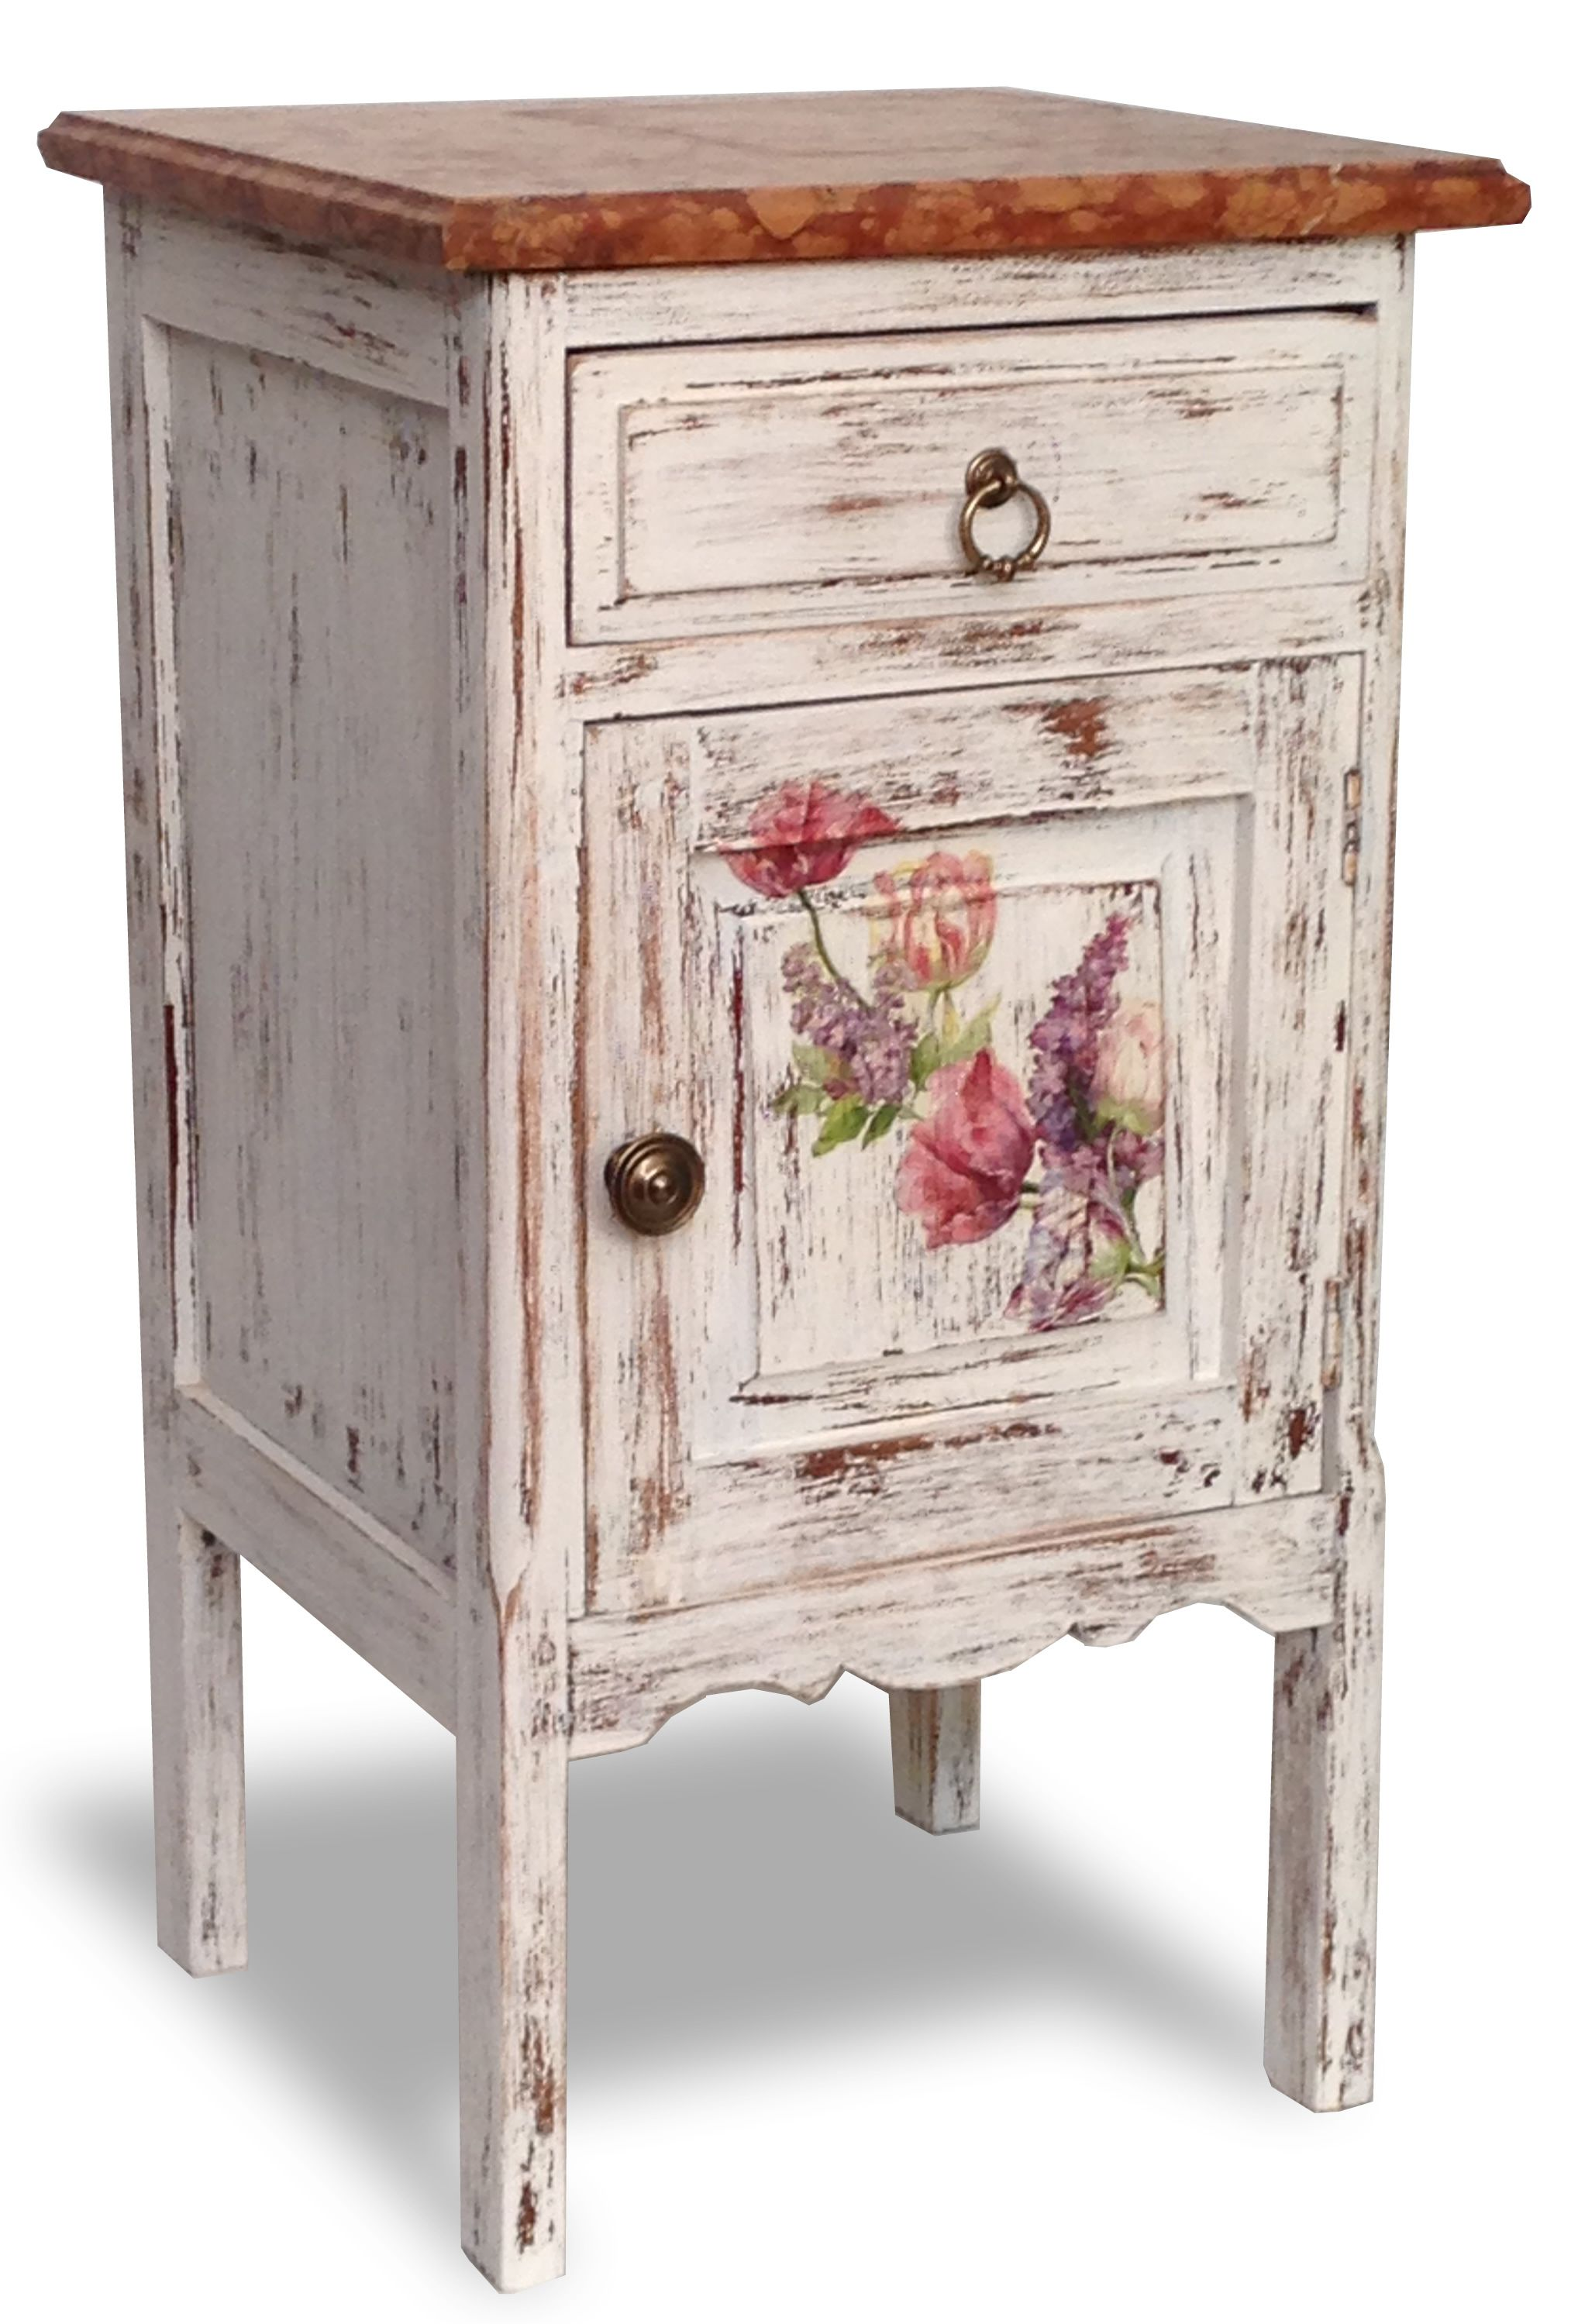 trendy, shabby chic | Furniture | Pinterest | Muebles reciclados ...